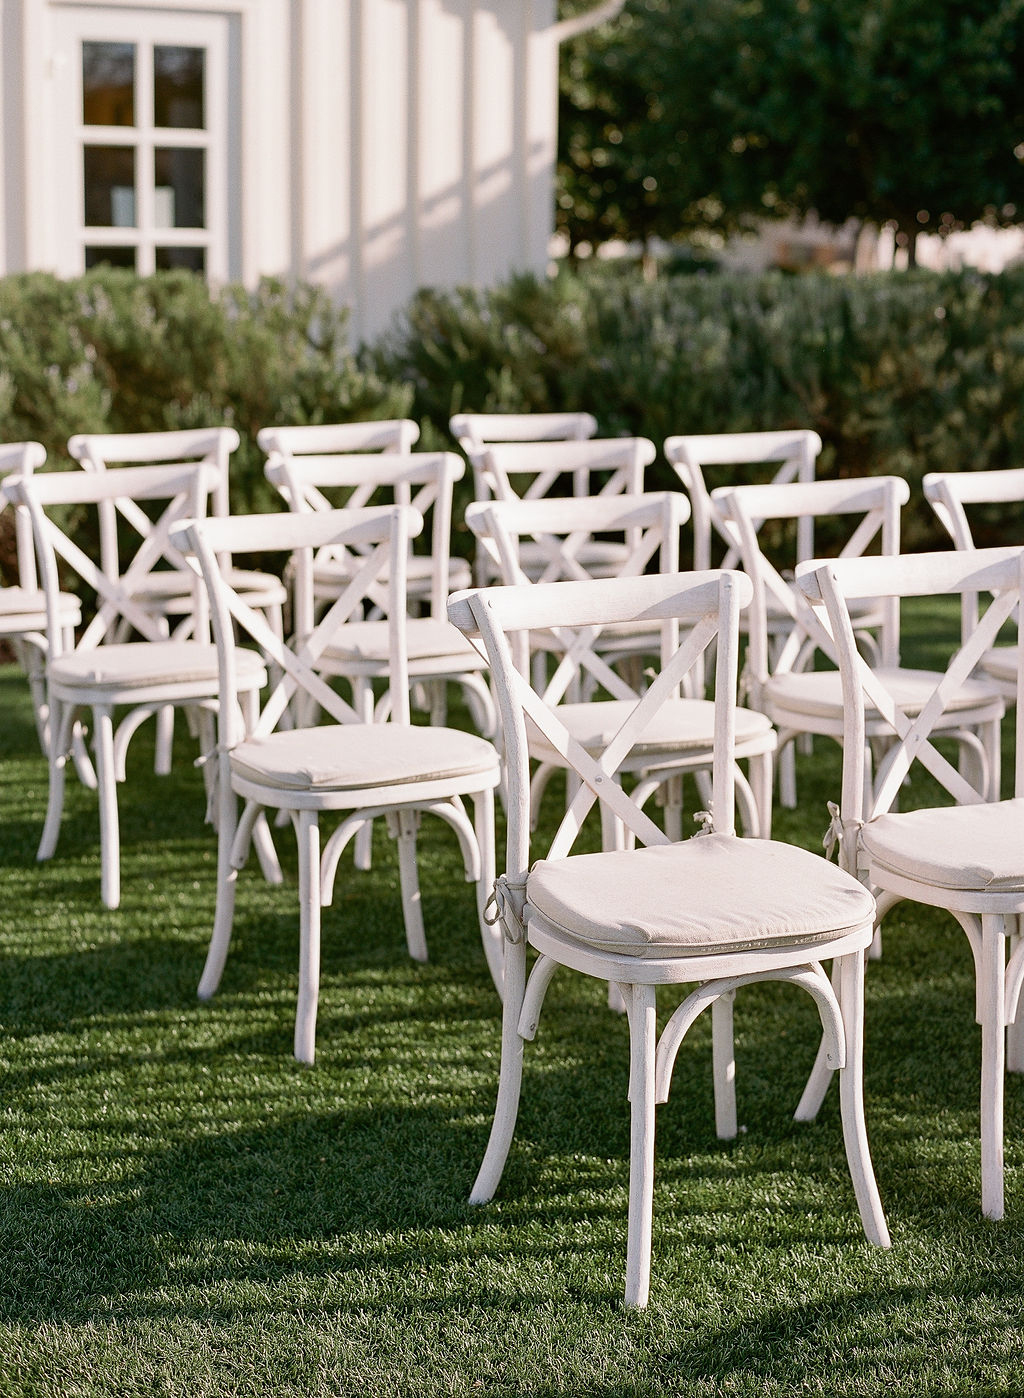 white ceremony chairs with cushions set up on lawn